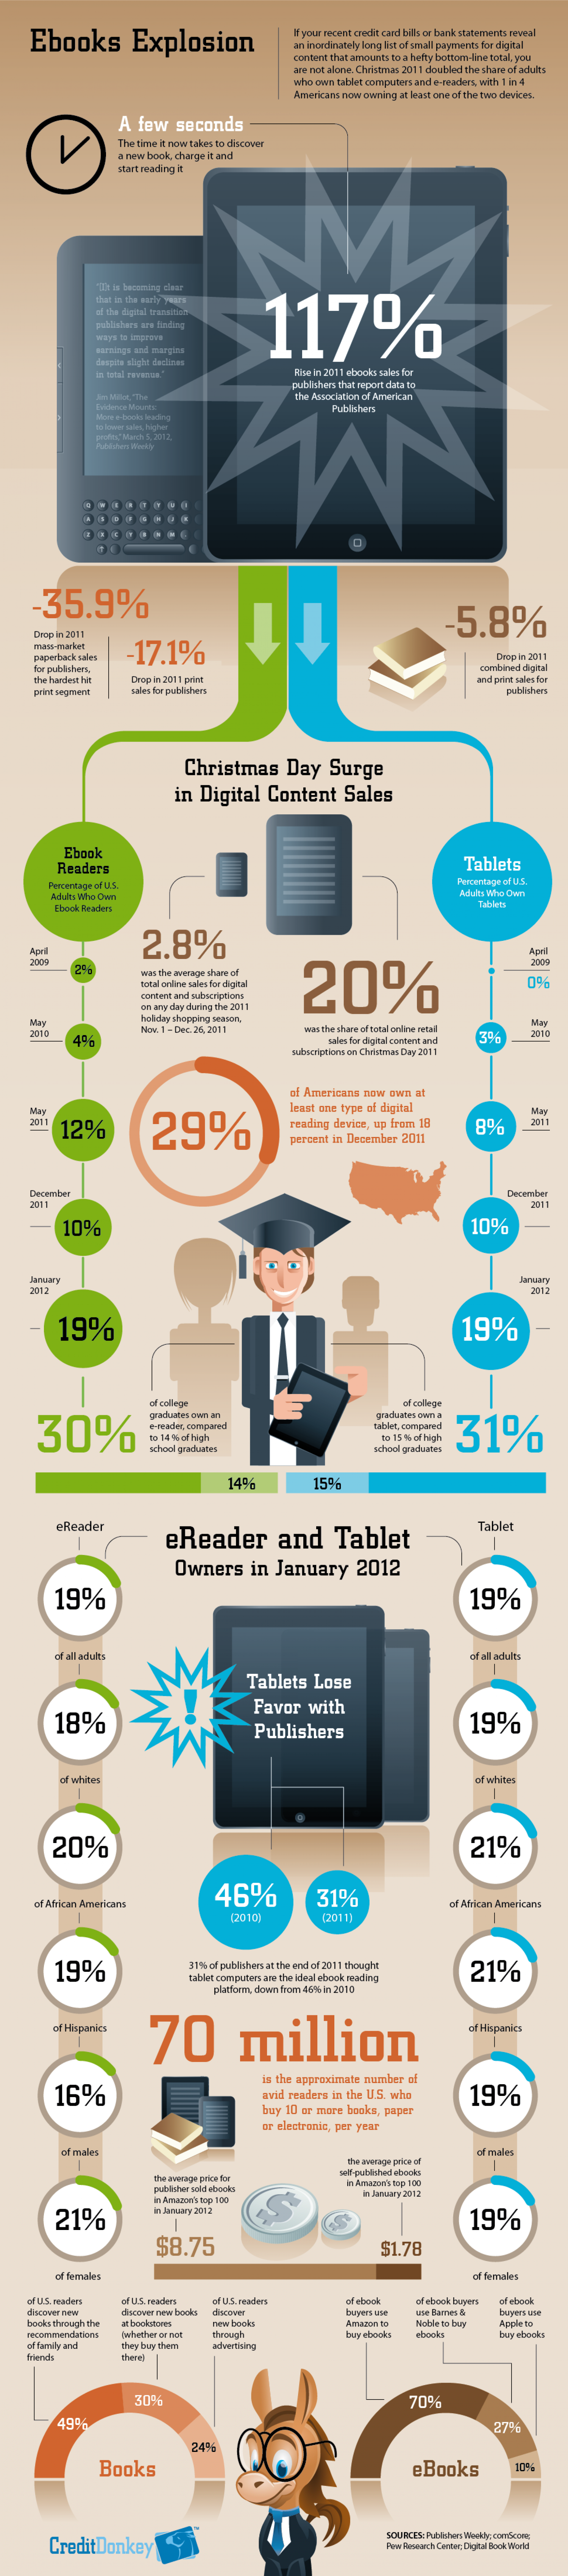 Ebooks Explosion Infographic